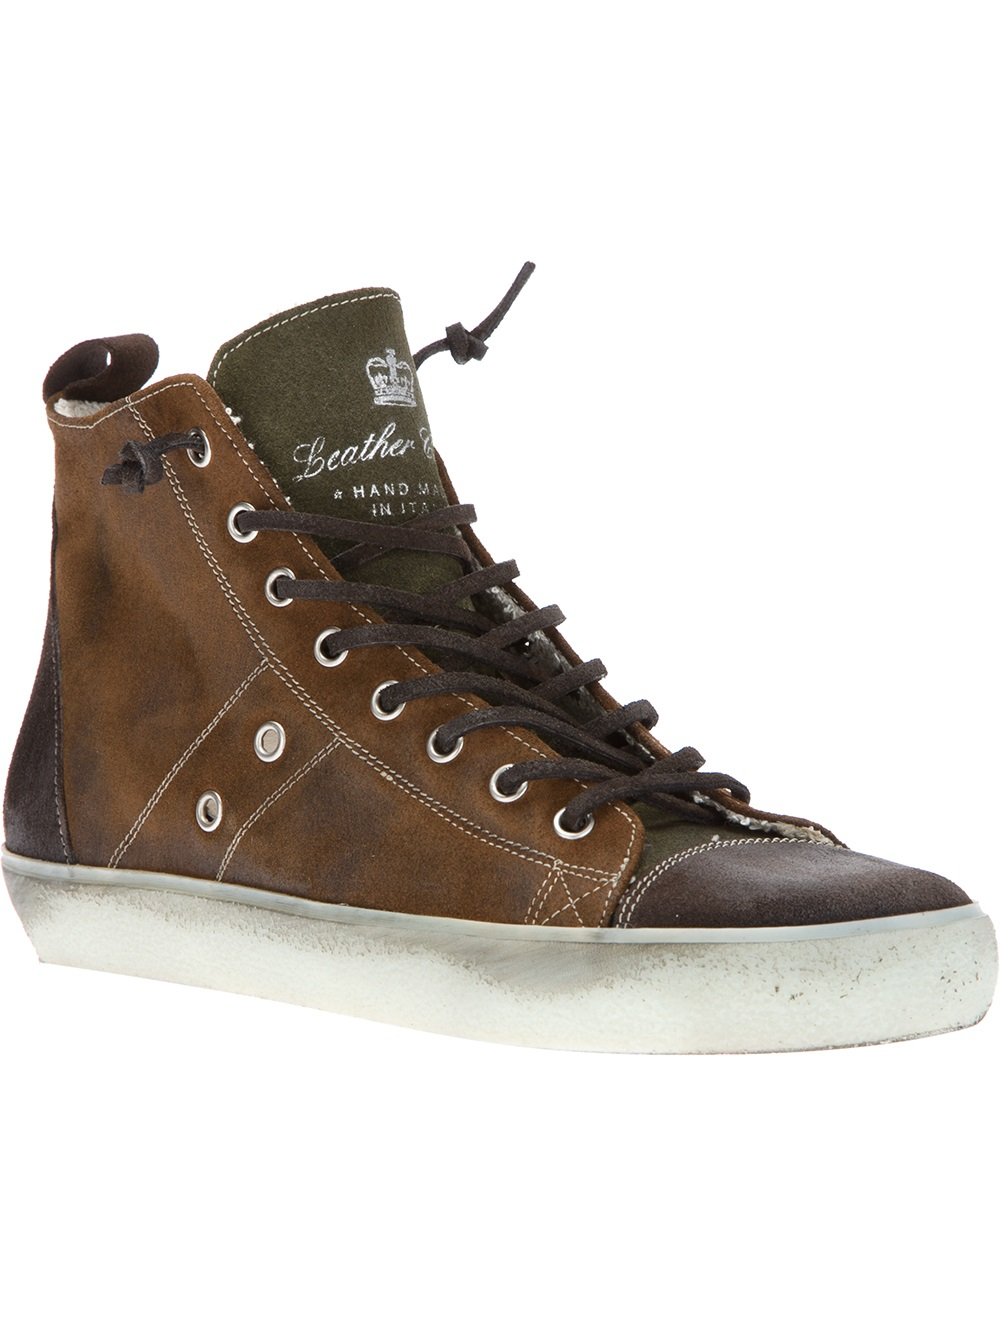 most comfortable sneakers - ShopStyle.